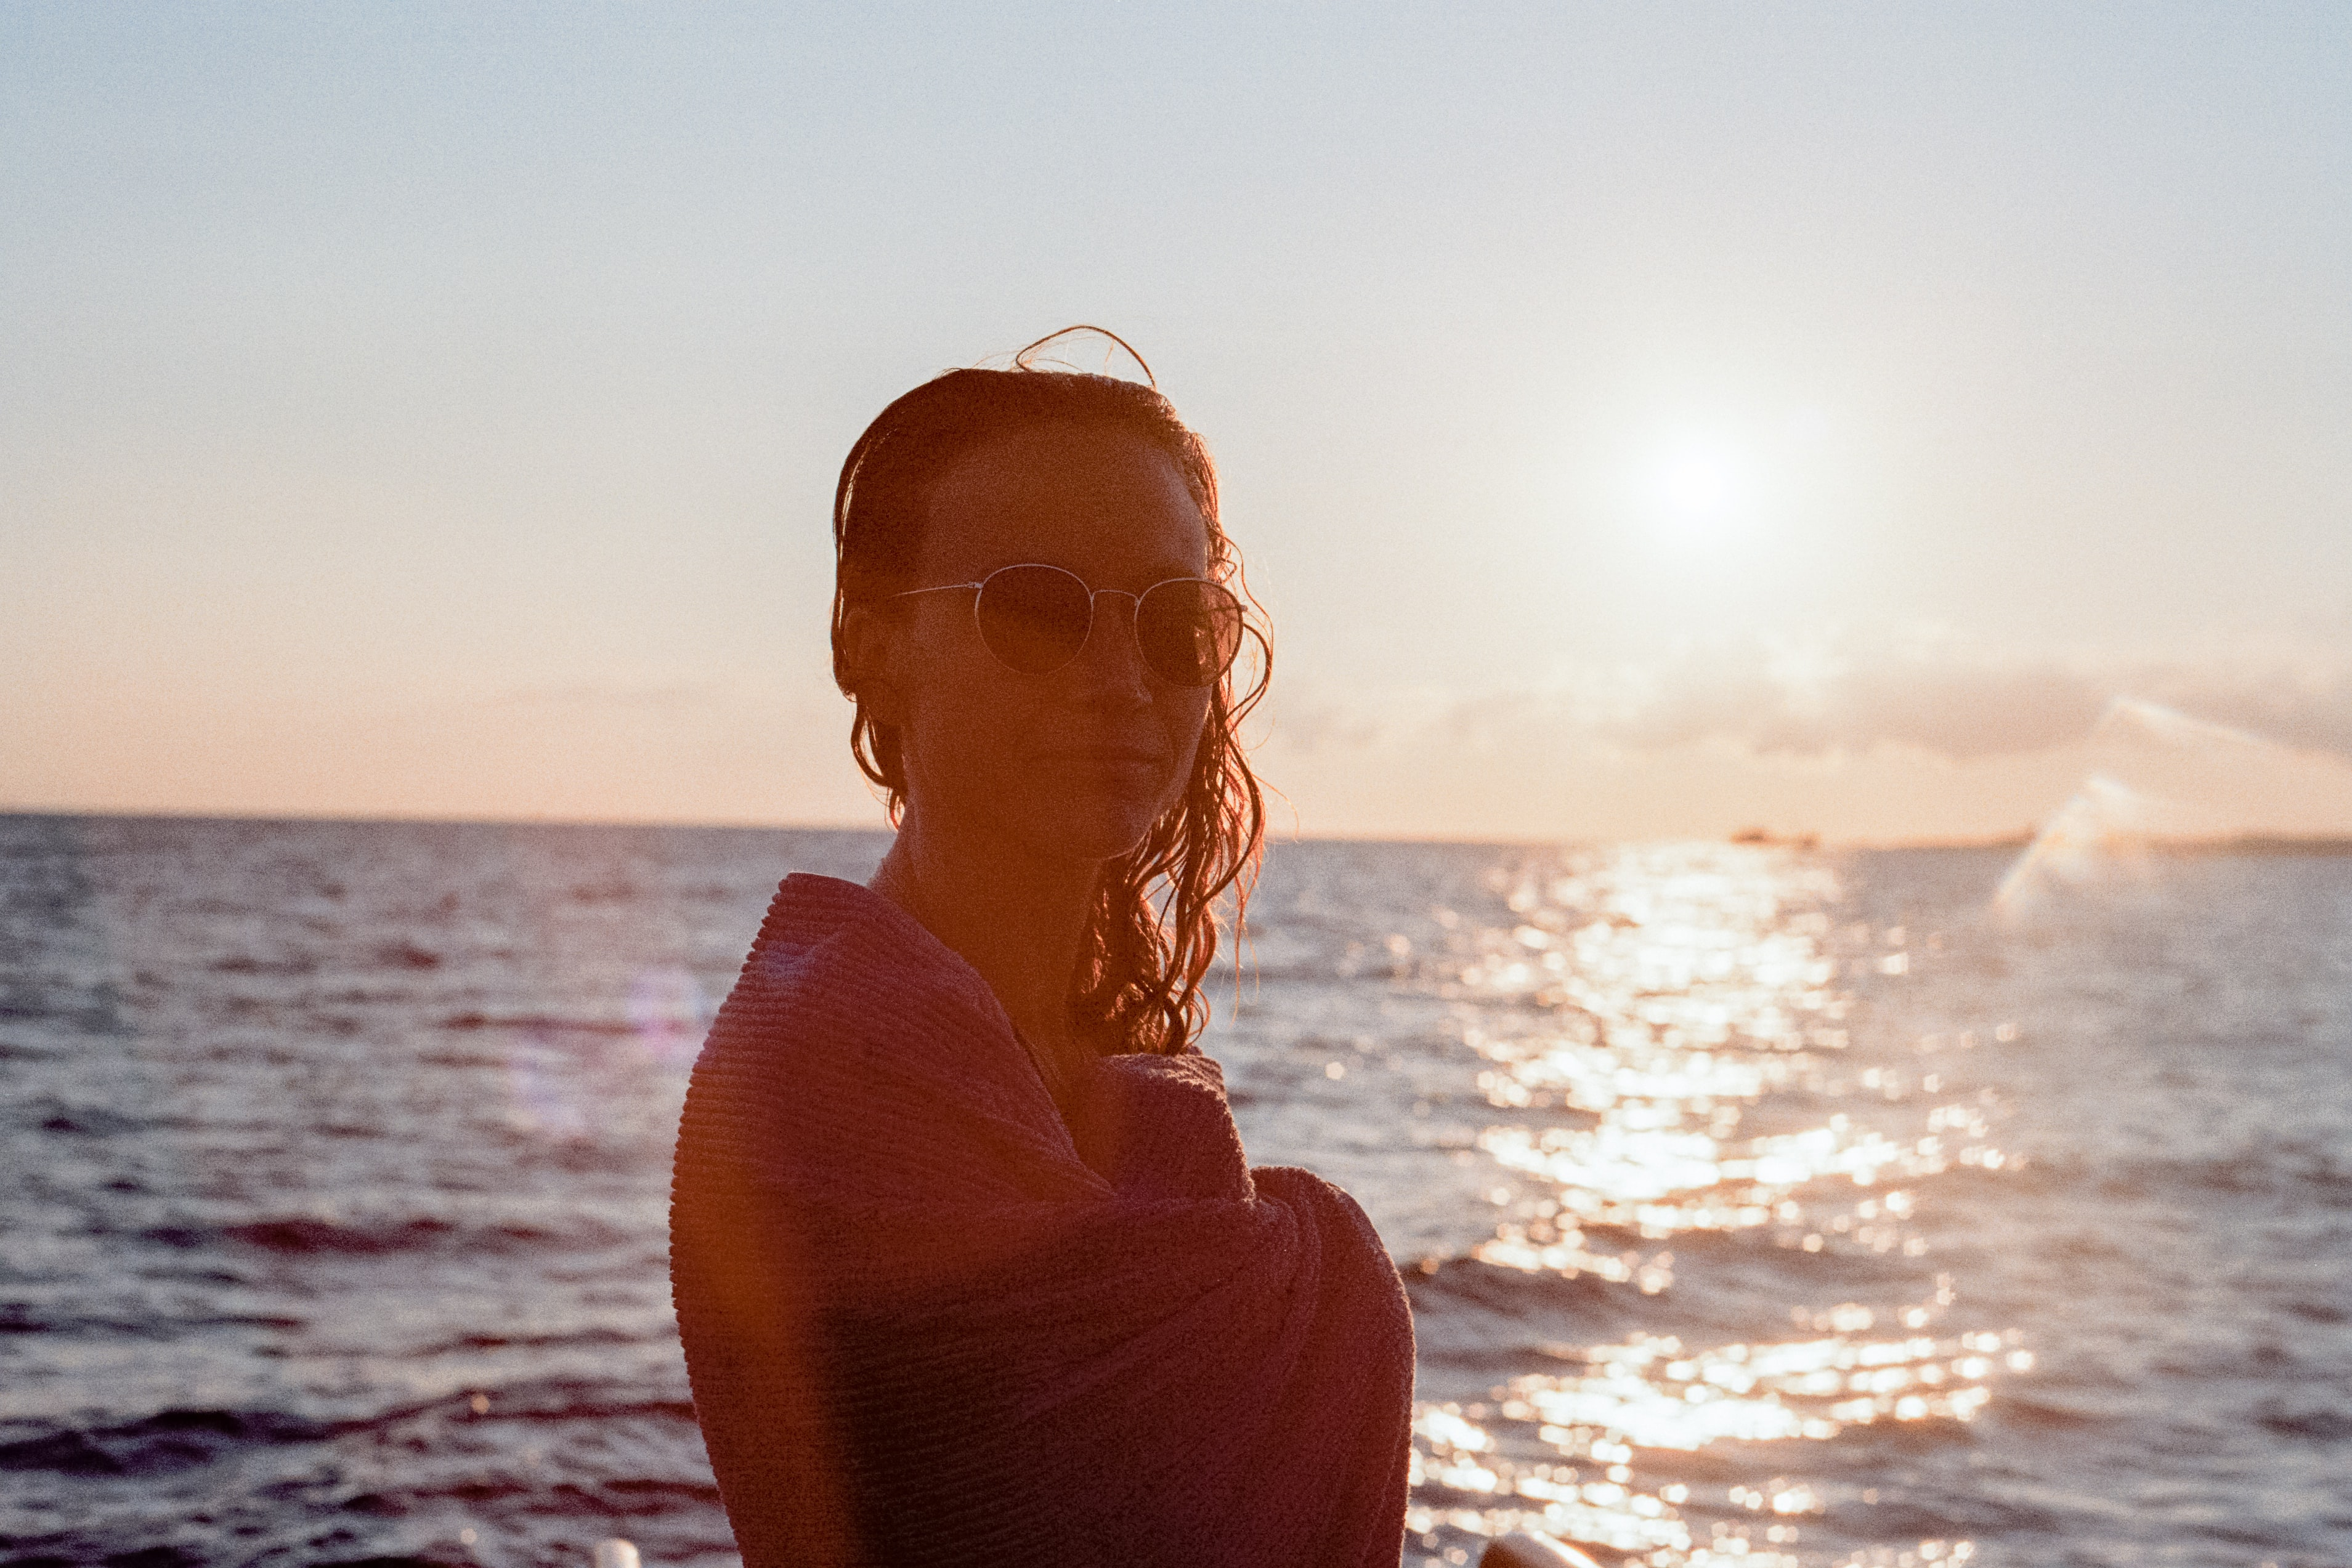 woman wearing sunglasses smiling at the beach during golden hour